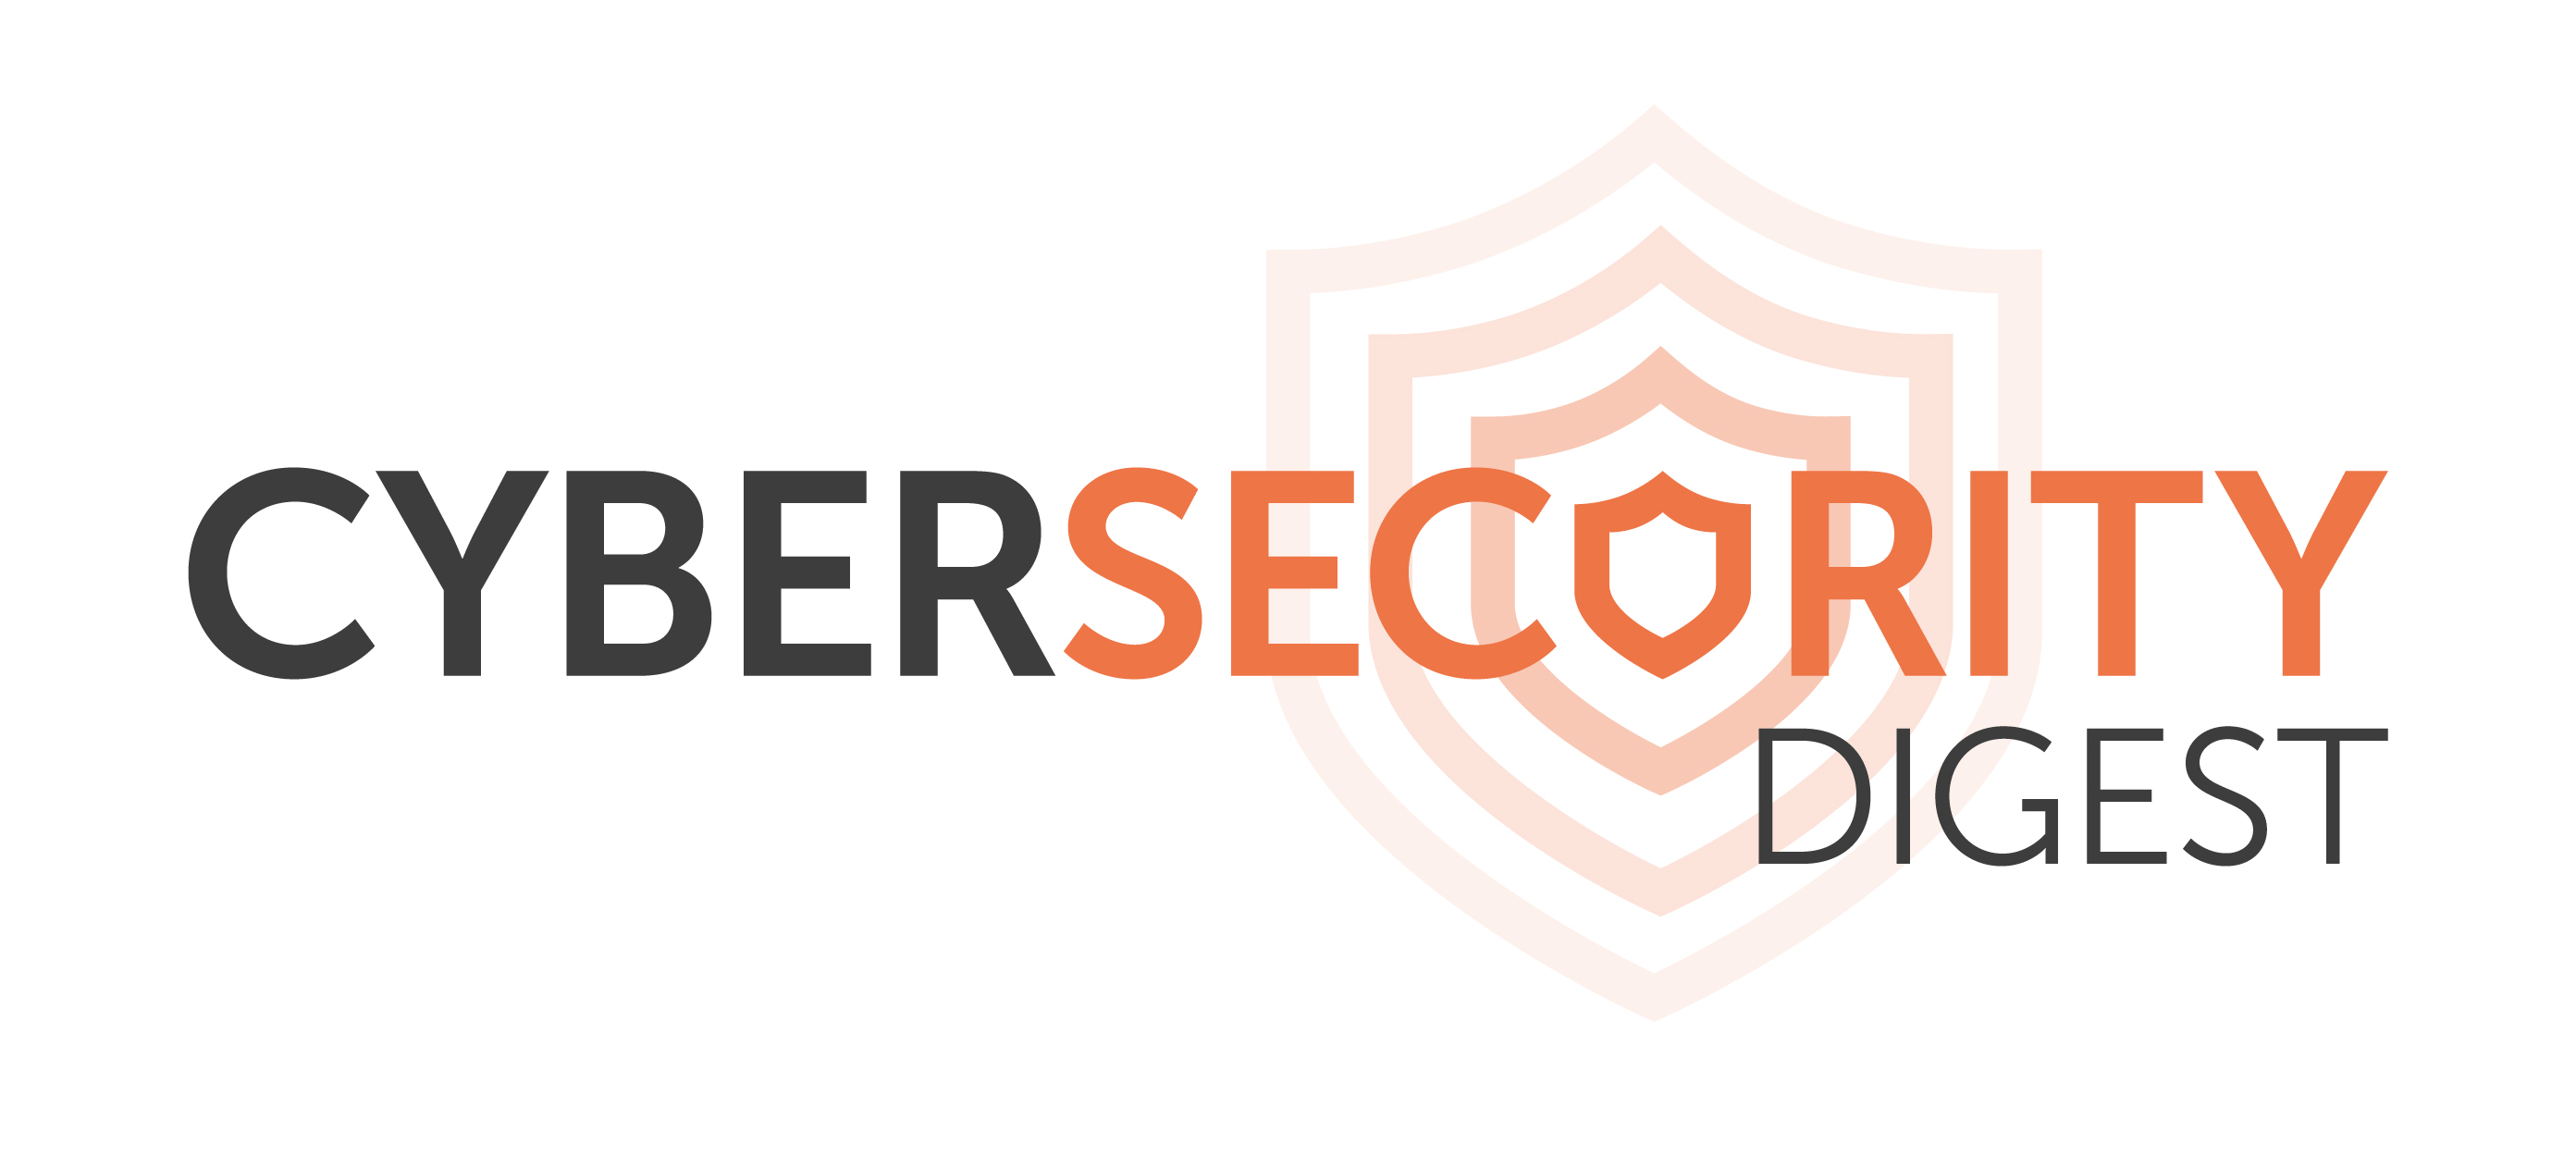 Graphic: Cybersecurity Digest logo